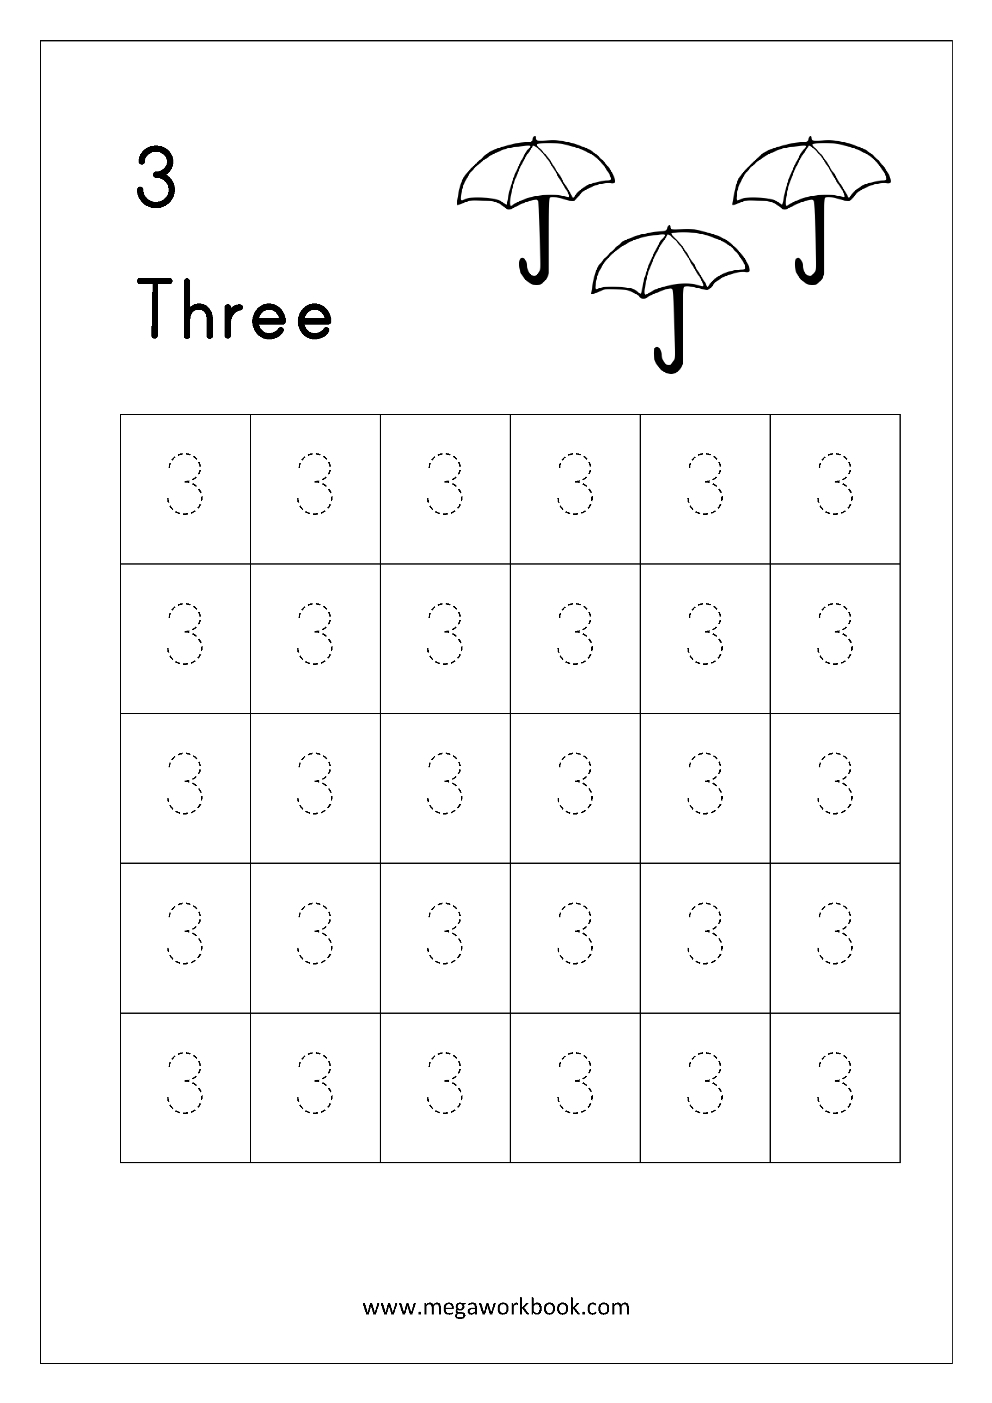 Free Printable Number Tracing And Writing (1-10) Worksheets - Number | Free Printable Number Worksheets